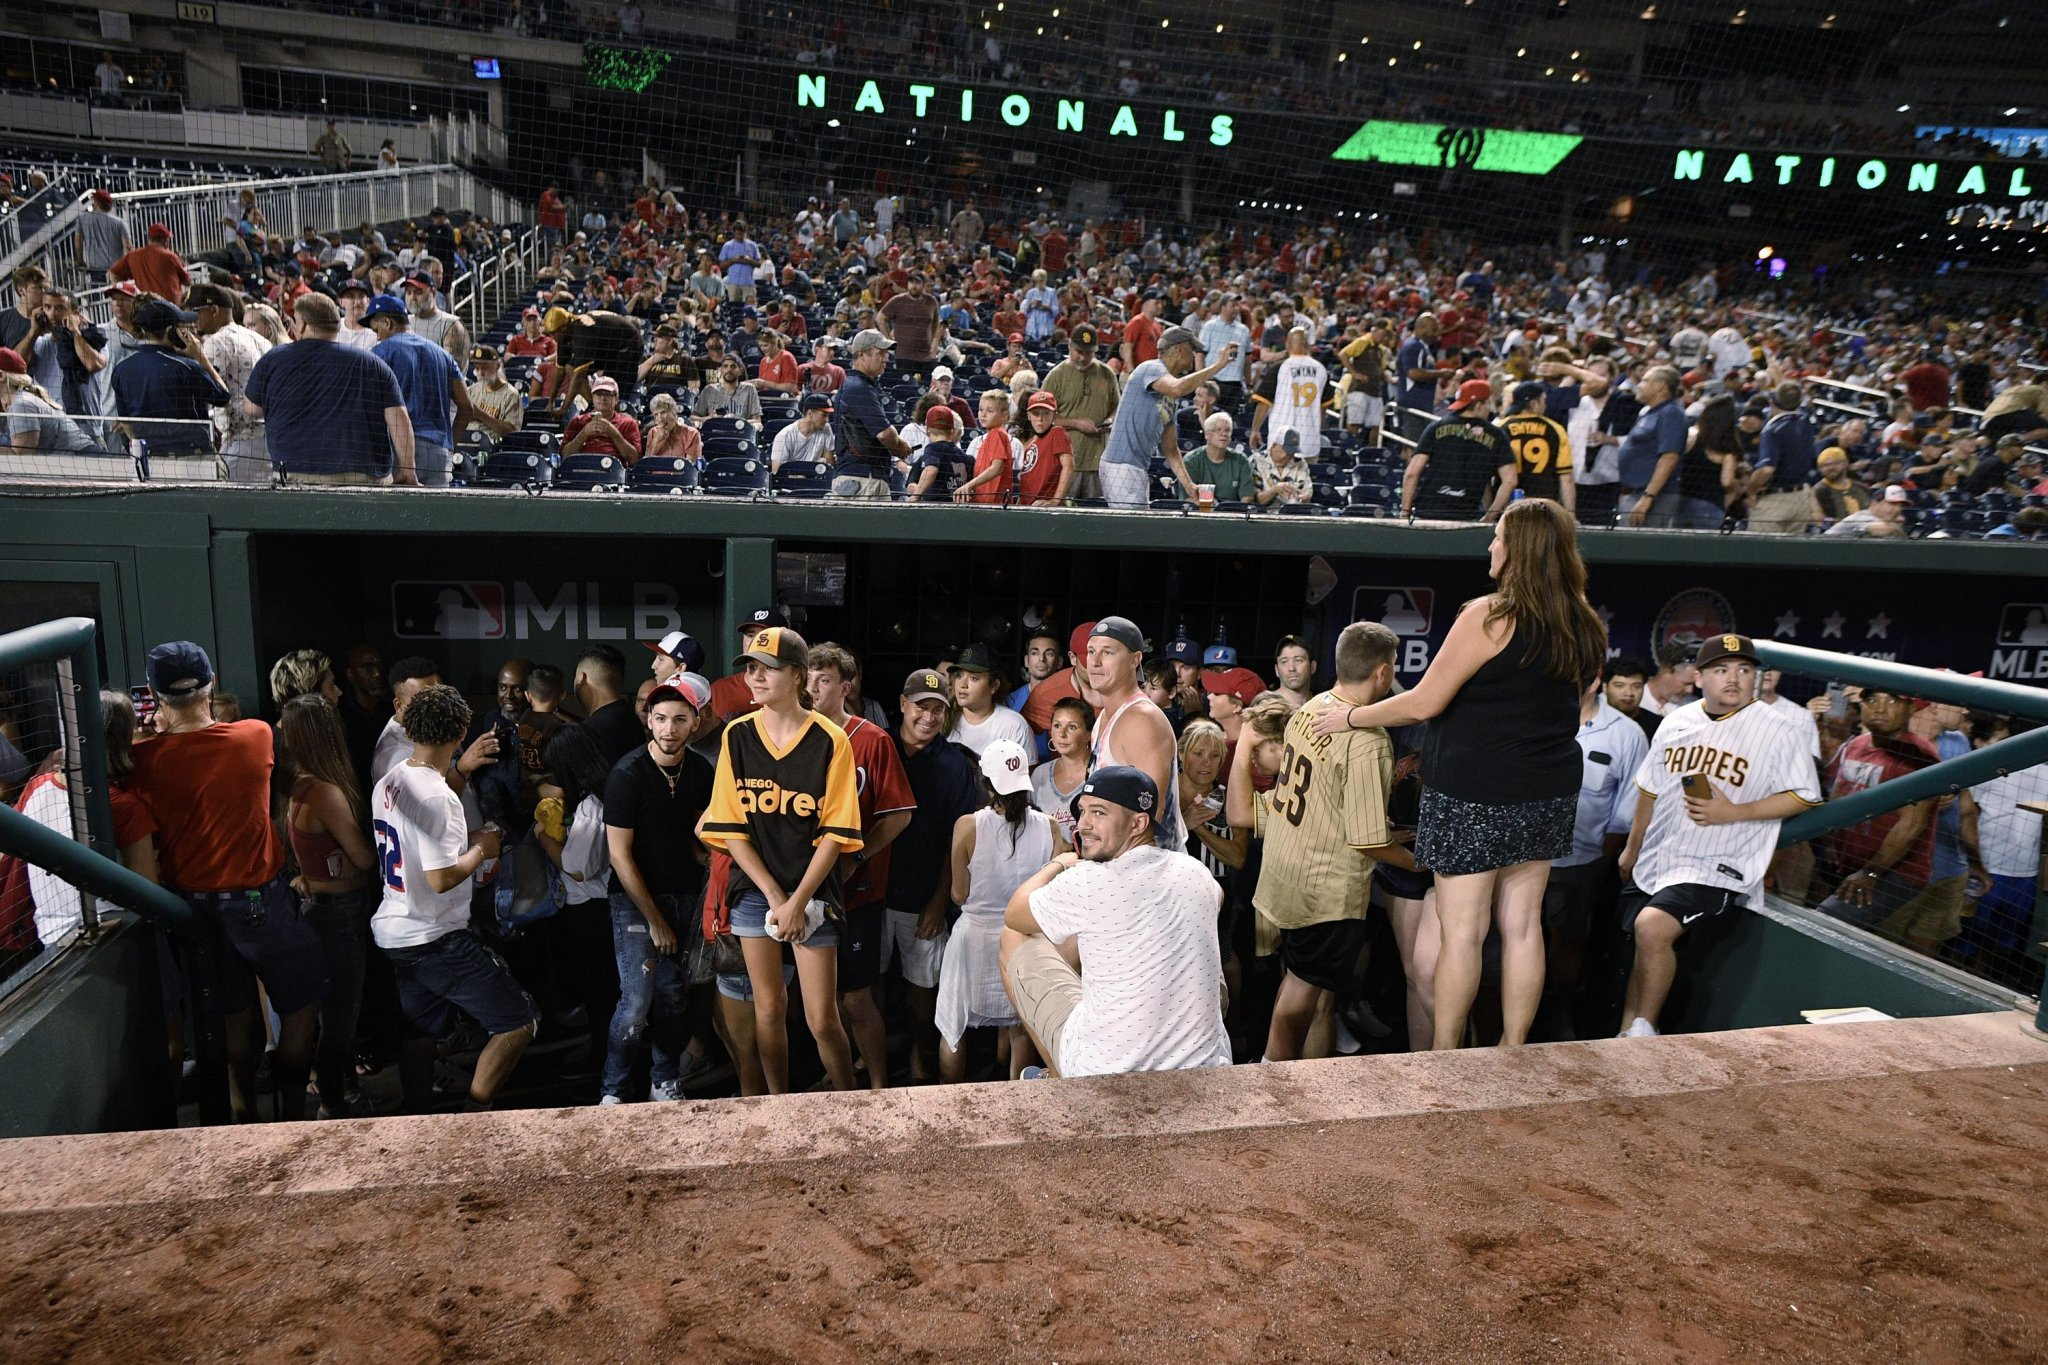 Padres-Nats game suspended after shooting outside DC stadium